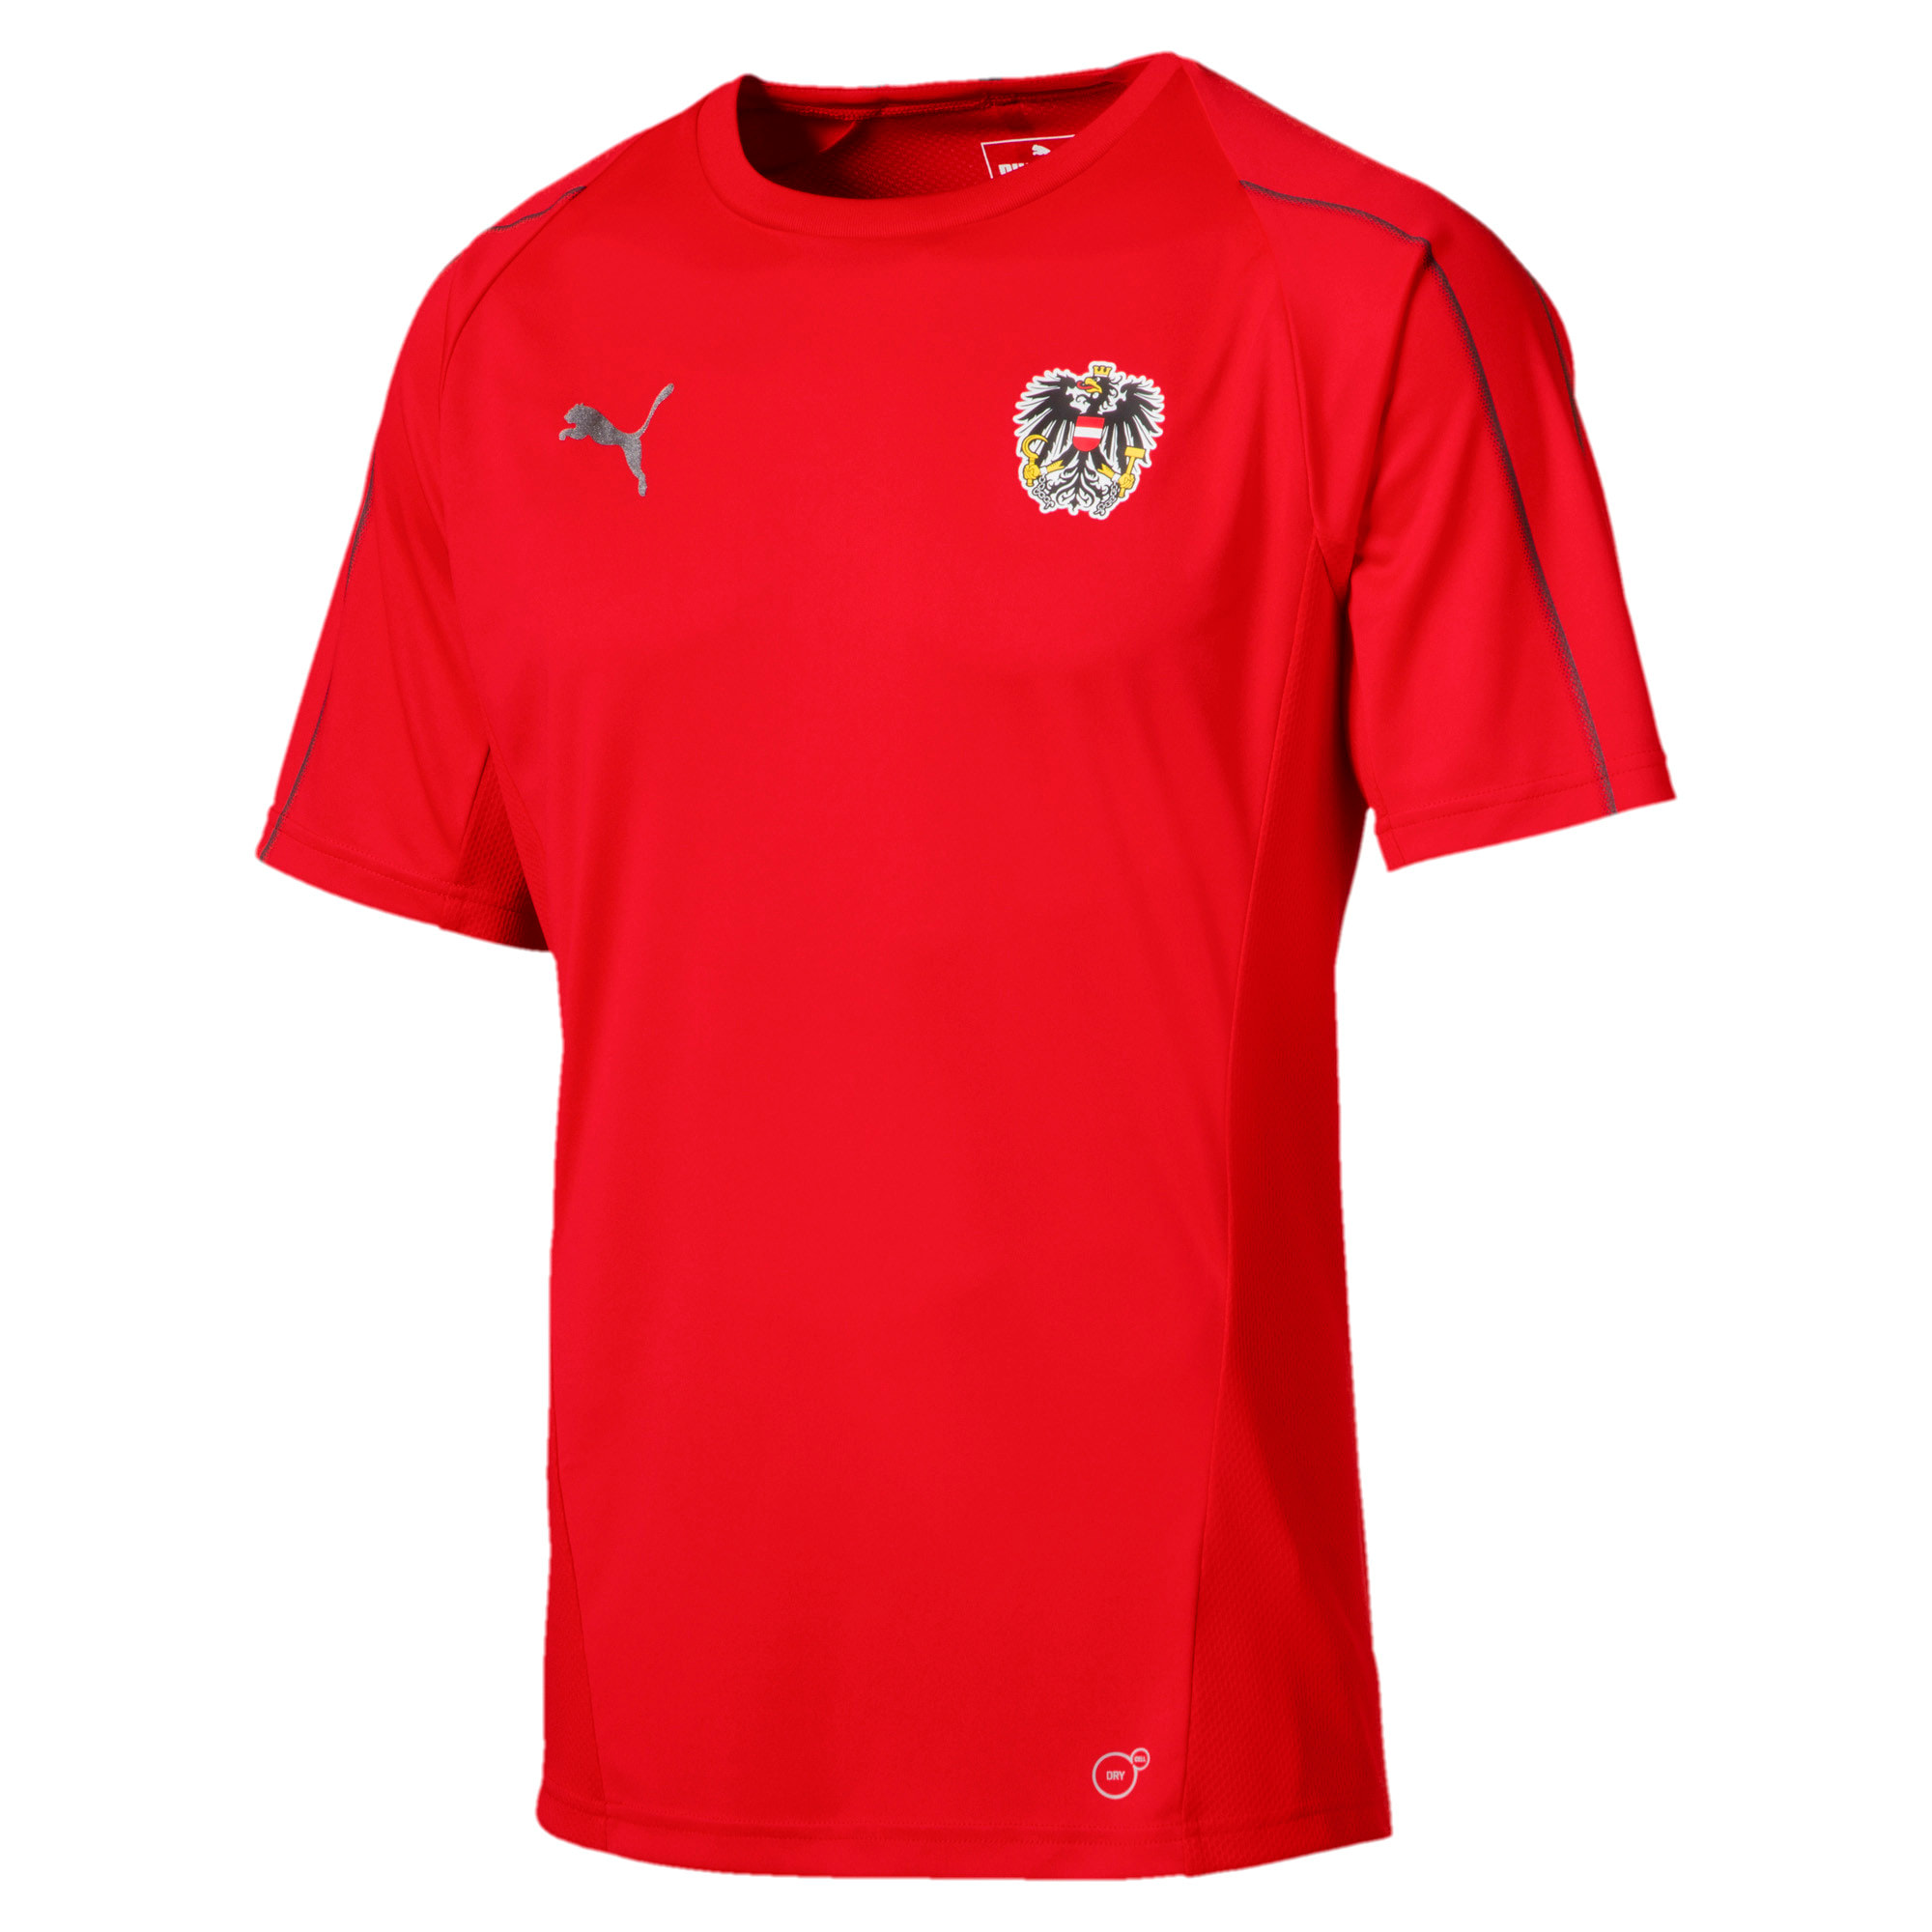 Austria Training Jersey, Puma Red, large